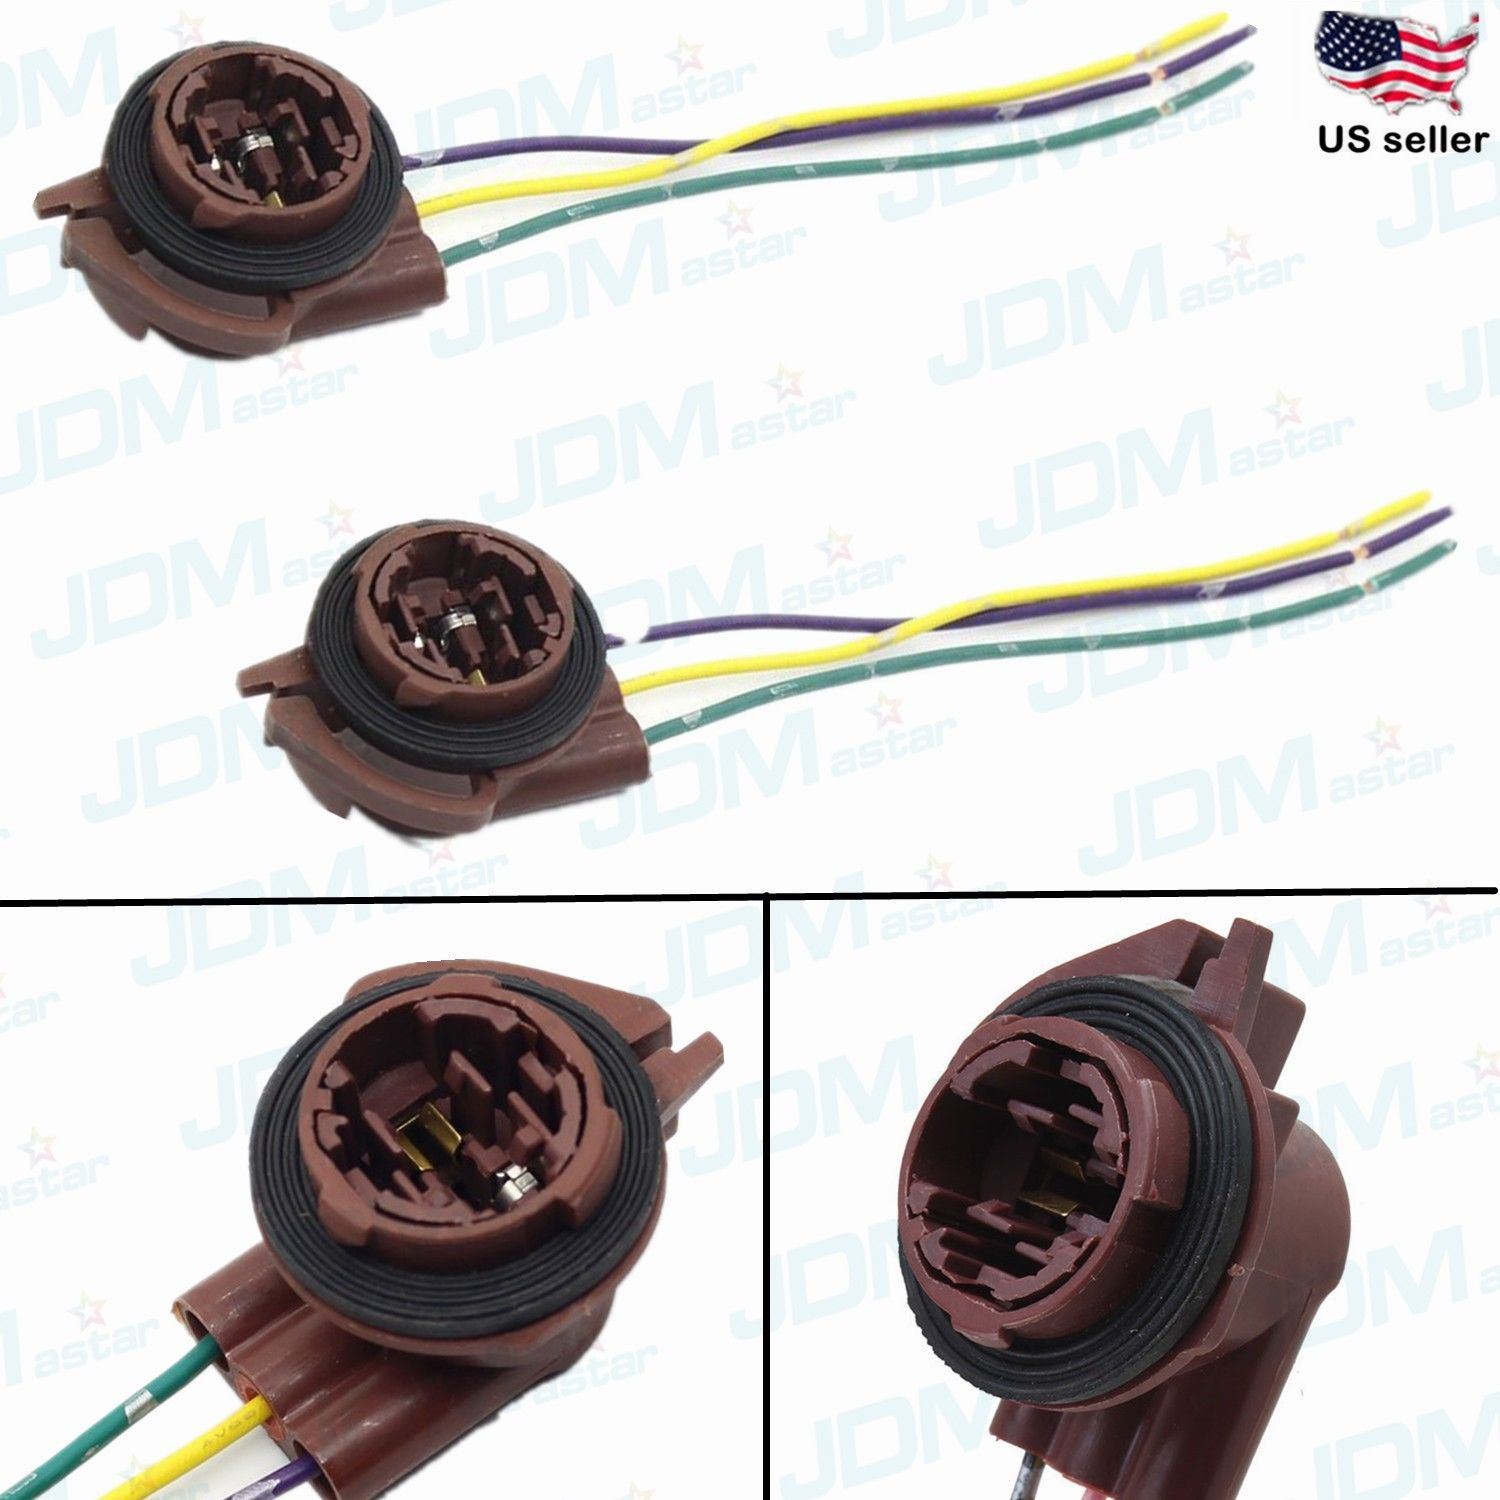 3157A socket harness 1?versionId=luZVsWTmtBB0K6WrOp6TCHwbqxcaKjlO jdm astar 3157 4157na bulb socket turn signal light harness wire 1986 Toyota 4Runner Wiring Harness at panicattacktreatment.co